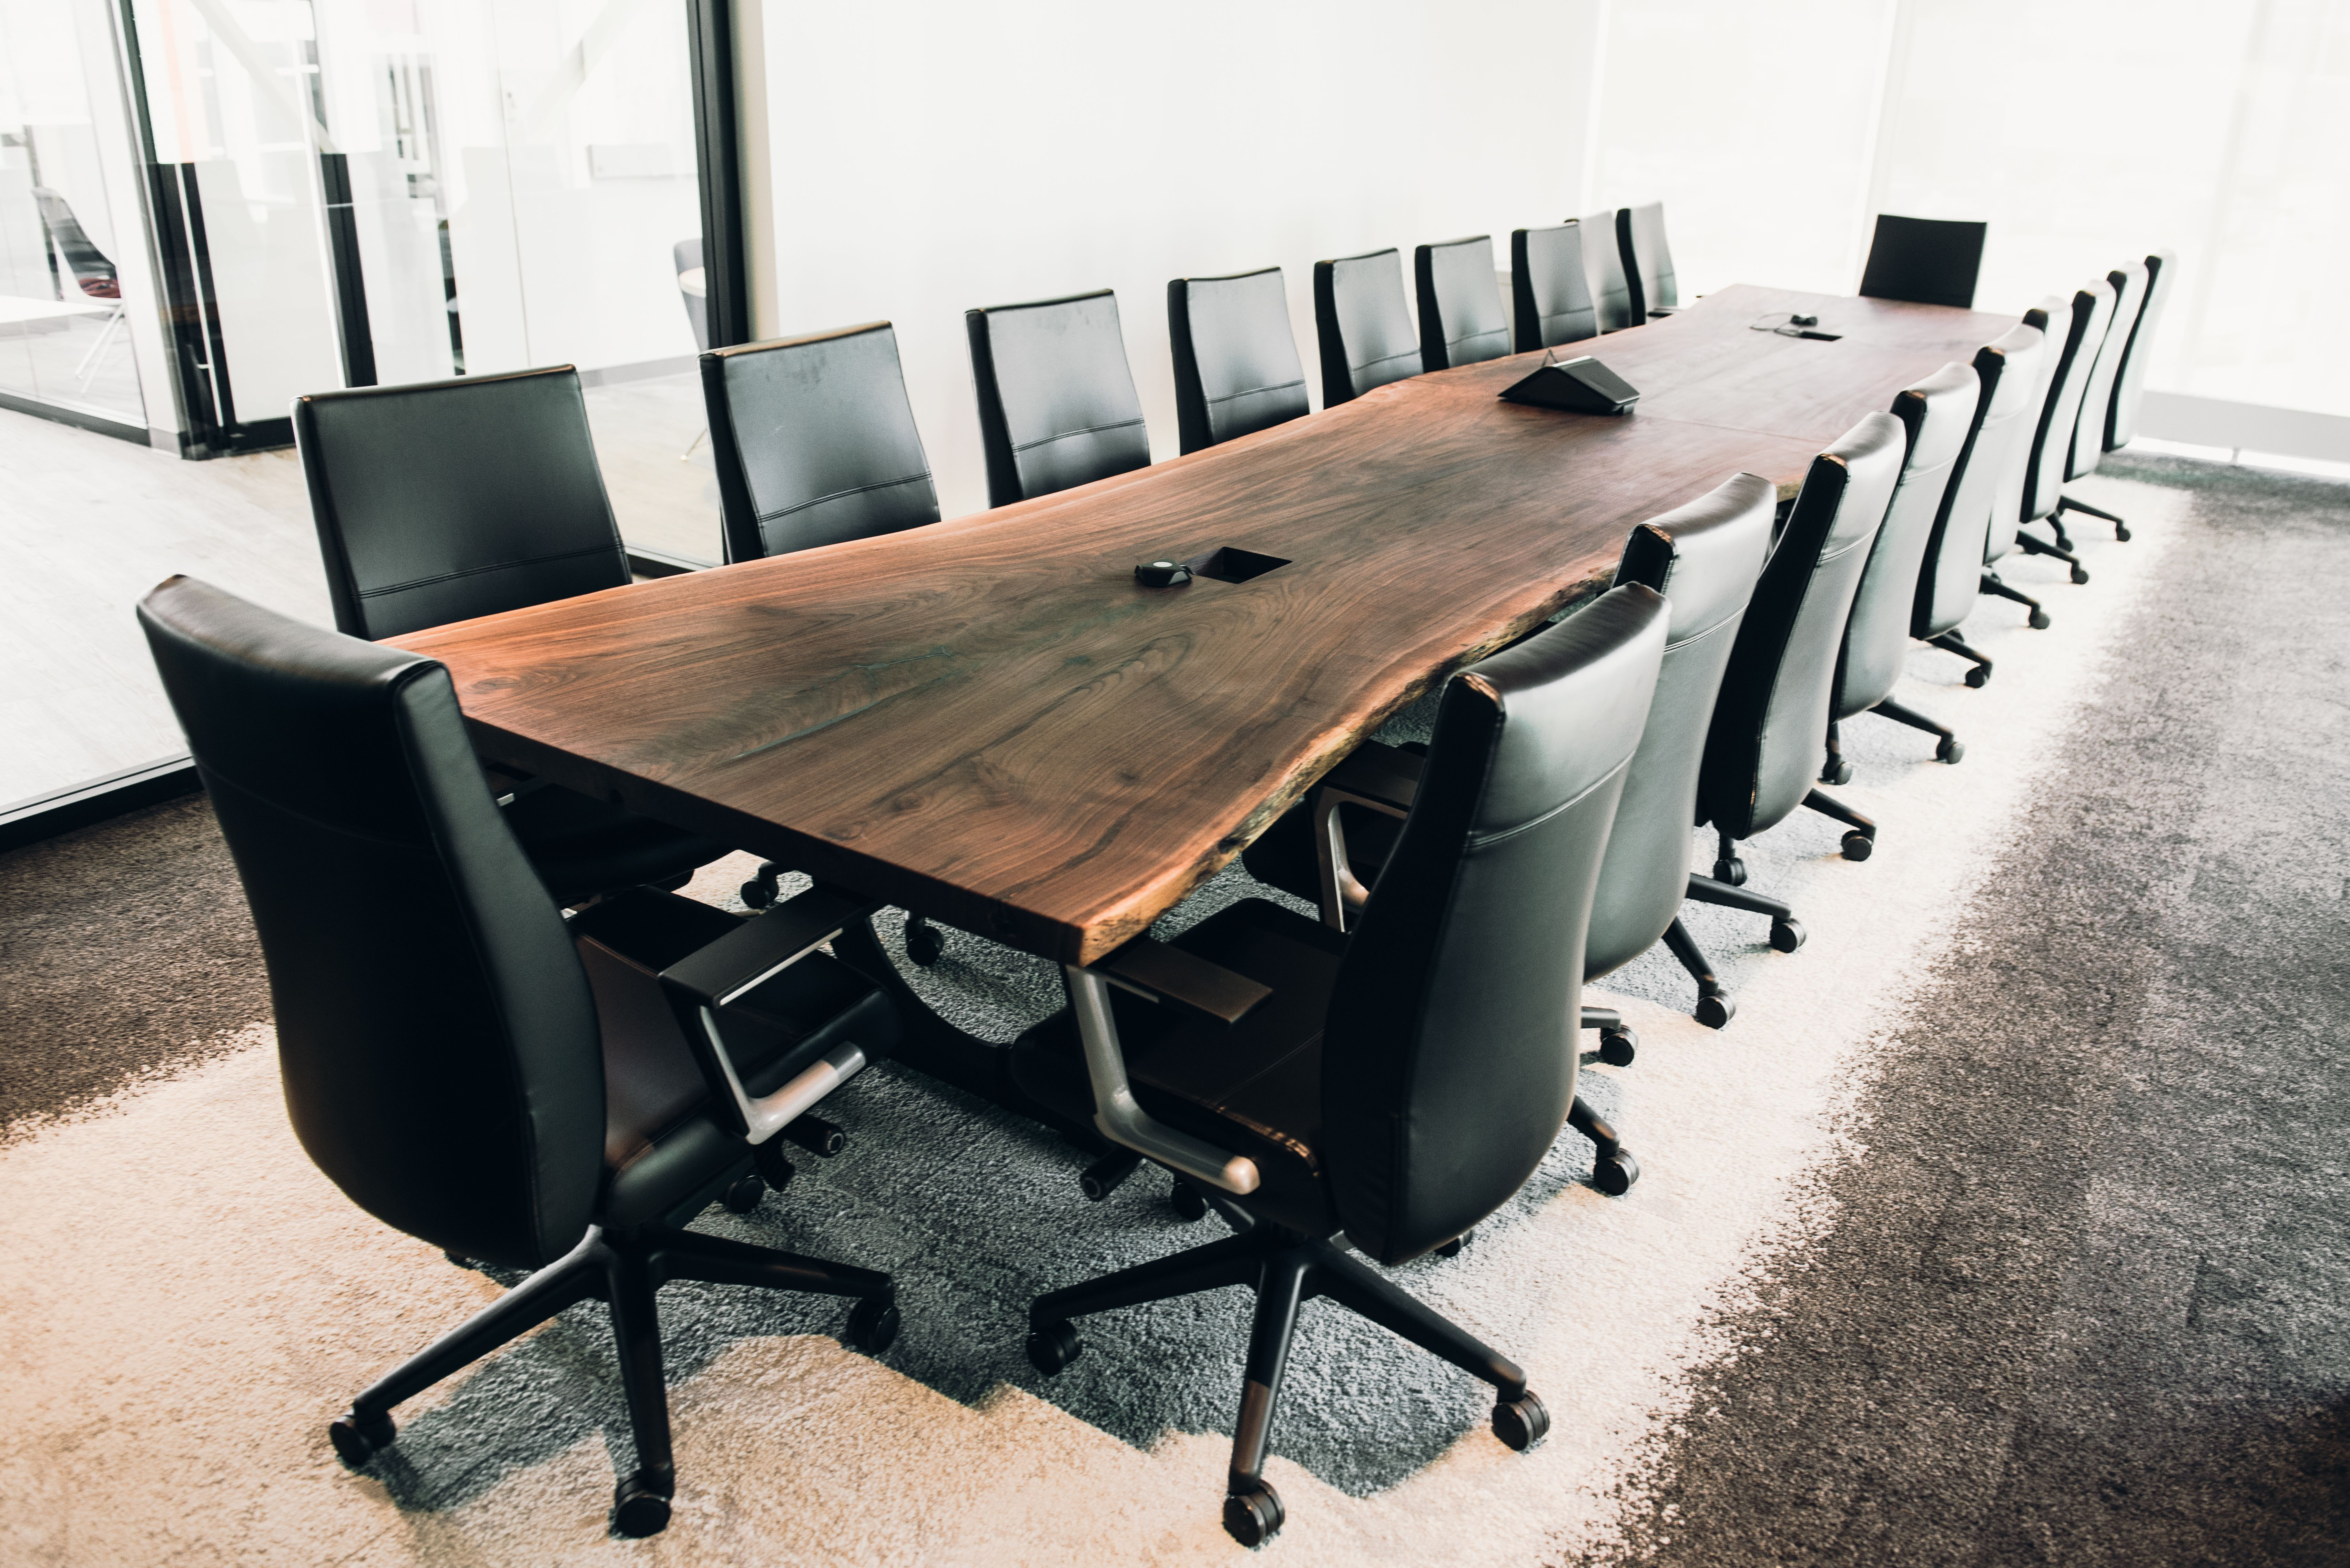 20 Live Edge Walnut Conference Table Black Leather Chairs